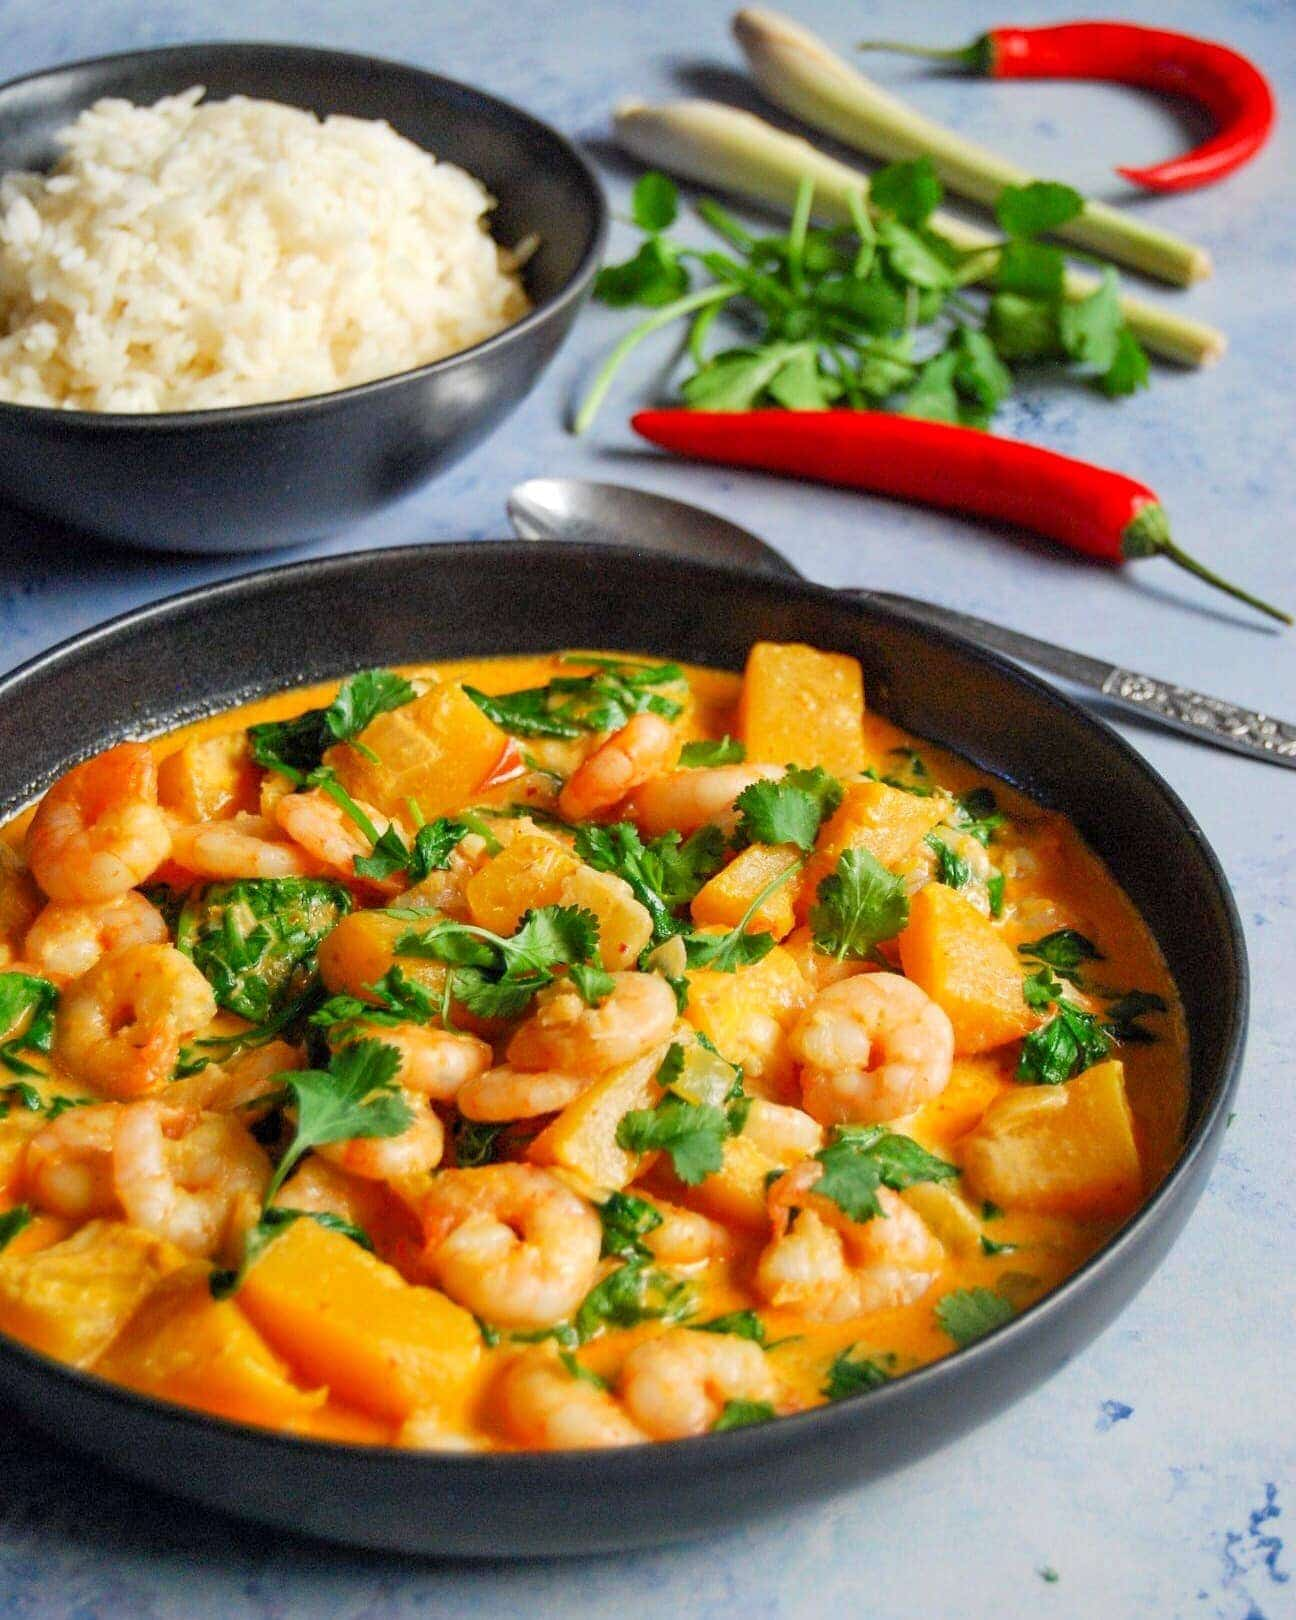 A bowl of Thai red curry with prawns, pumpkin, spinach sprinkled with chopped coriander with a bowl of rice in the background.